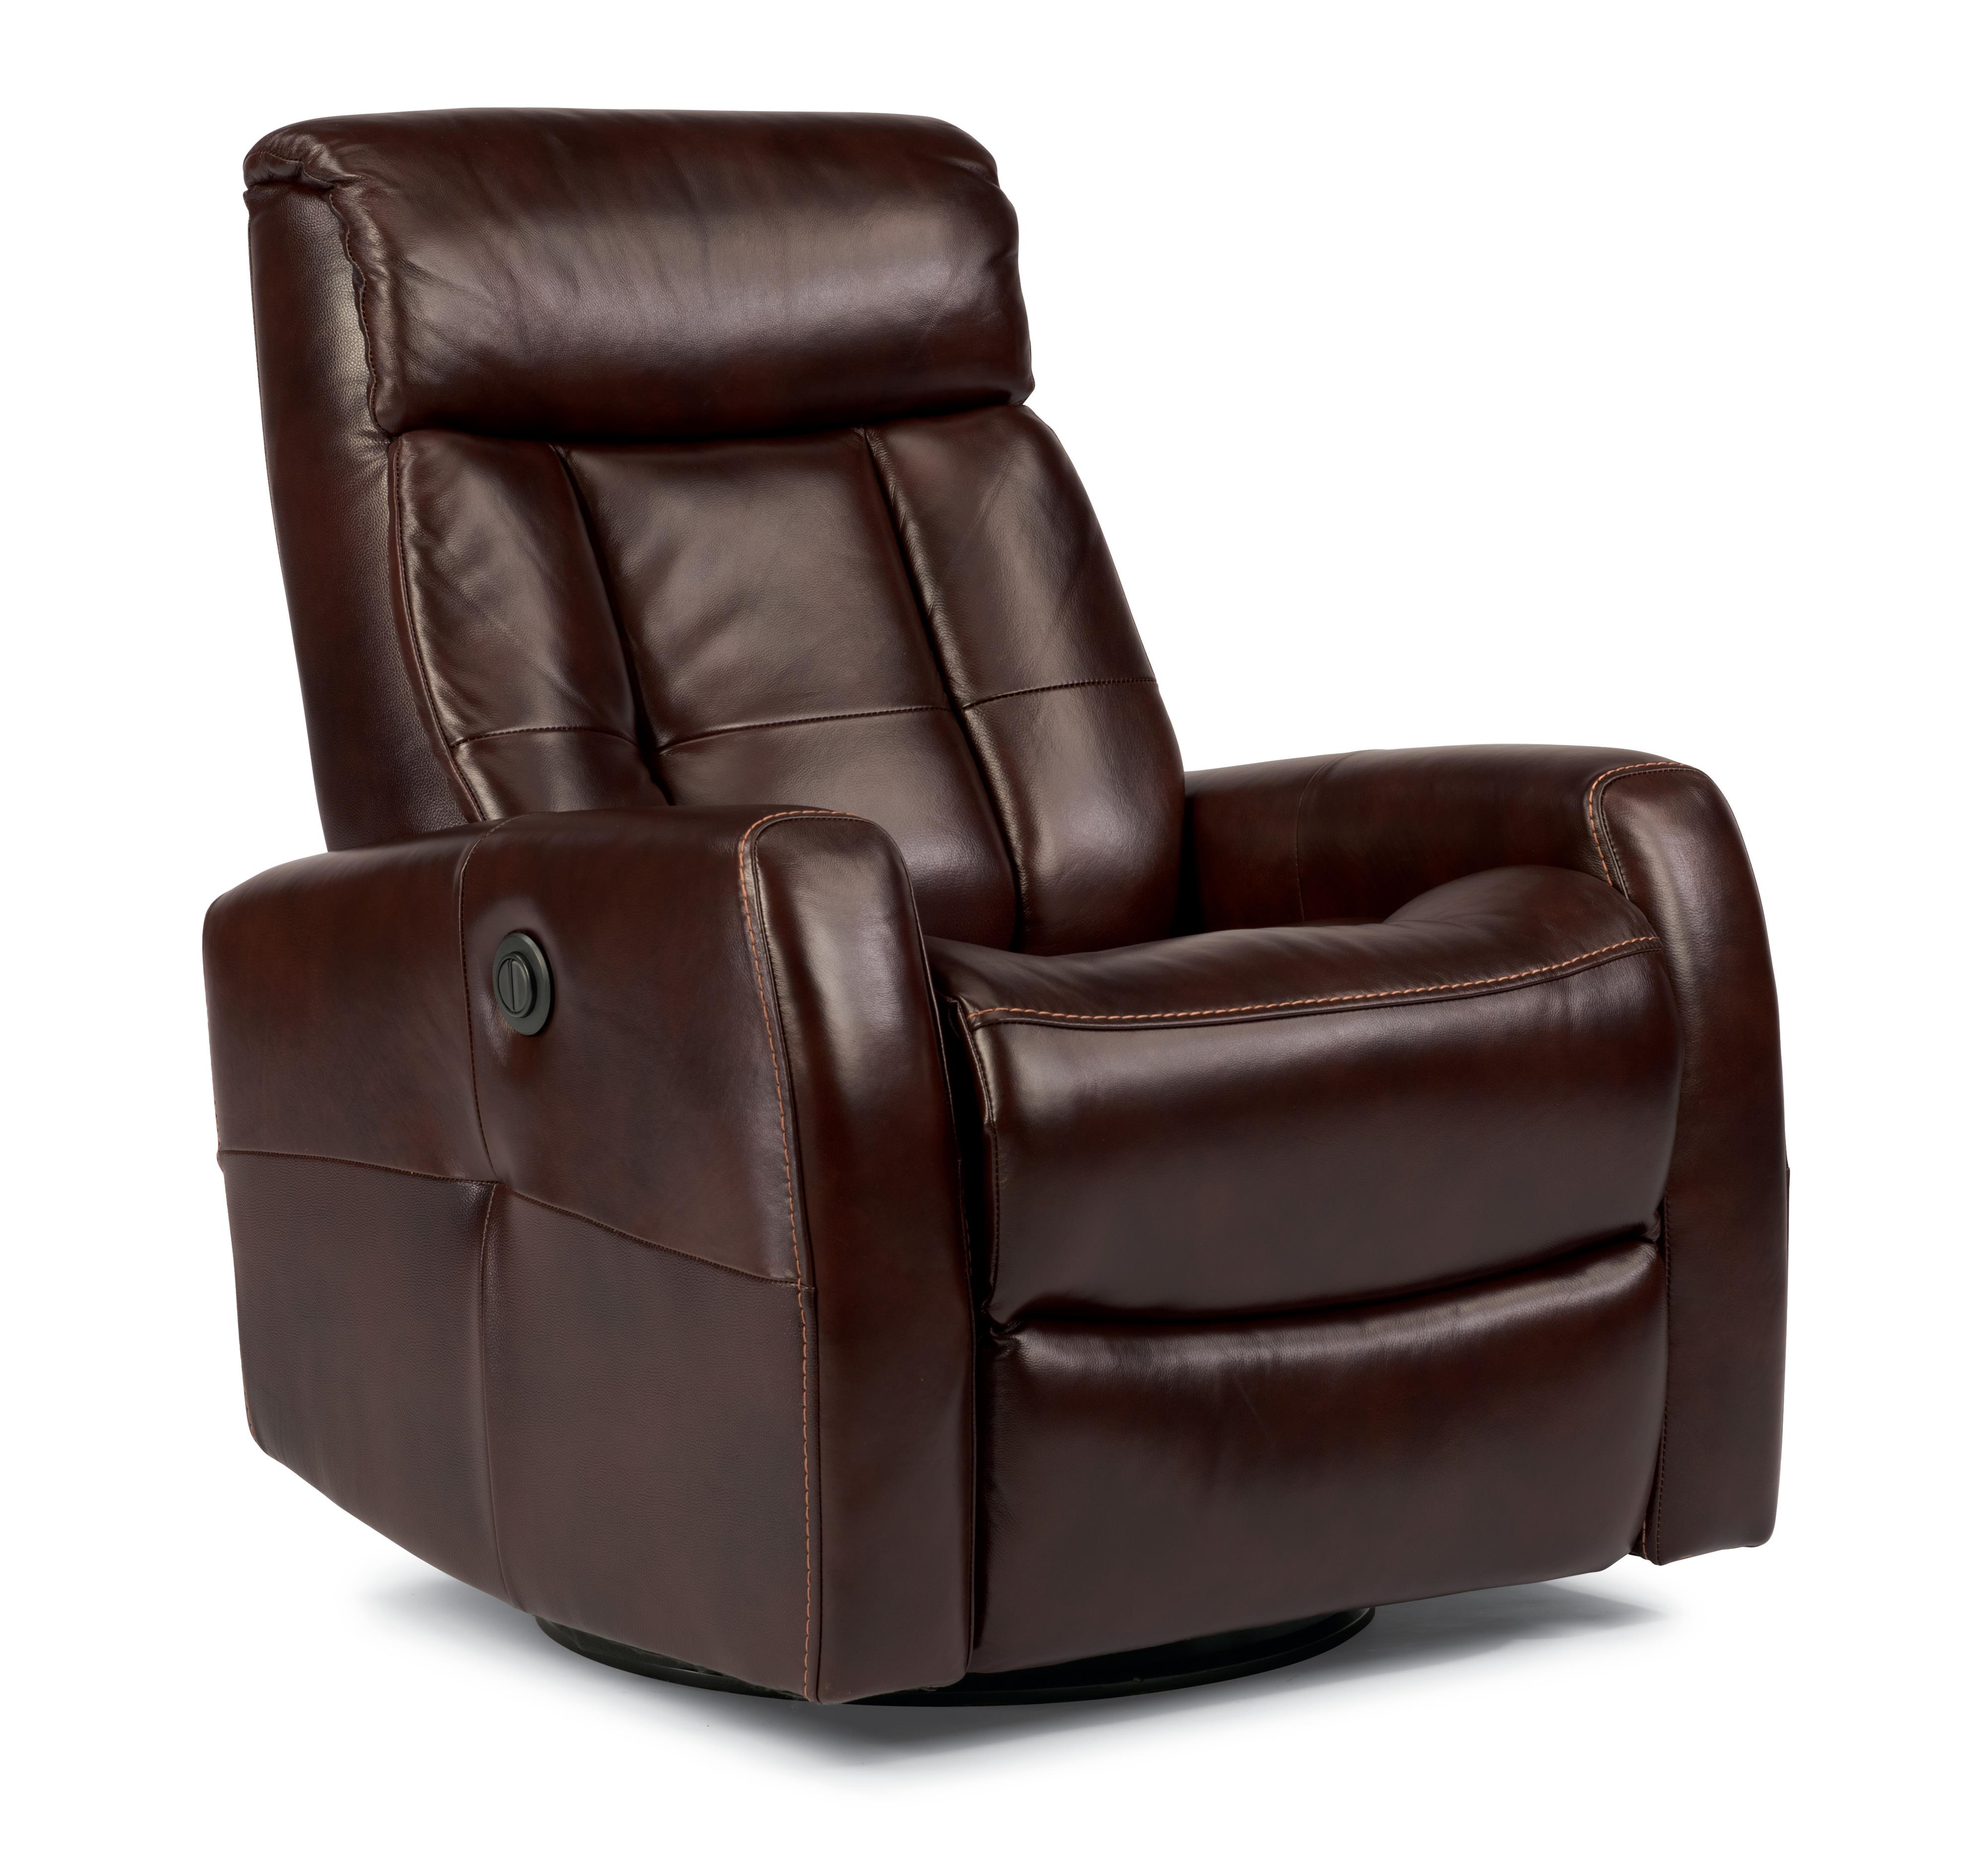 Flexsteel Latitudes Go Anywhere Recliners Galen Queen Power Swivel Glider Recliner - Item Number: 1389-53PQ-752-70